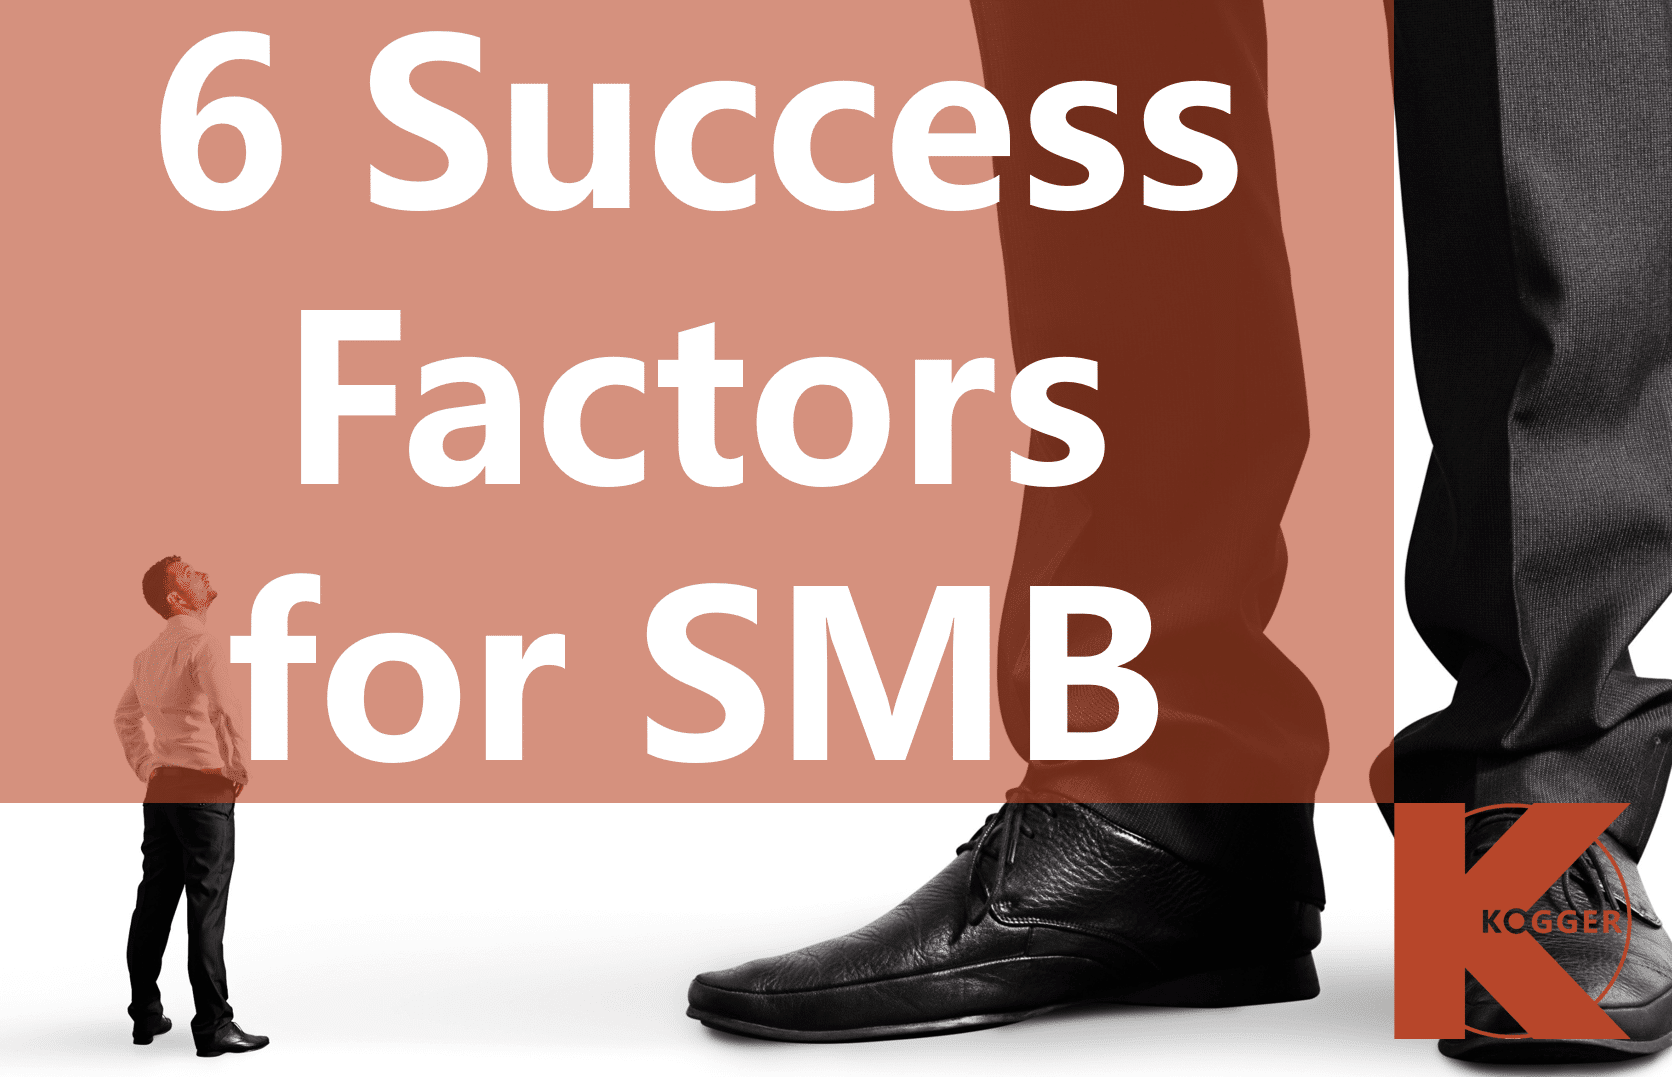 KOGGER_6 Success Factors for SMB